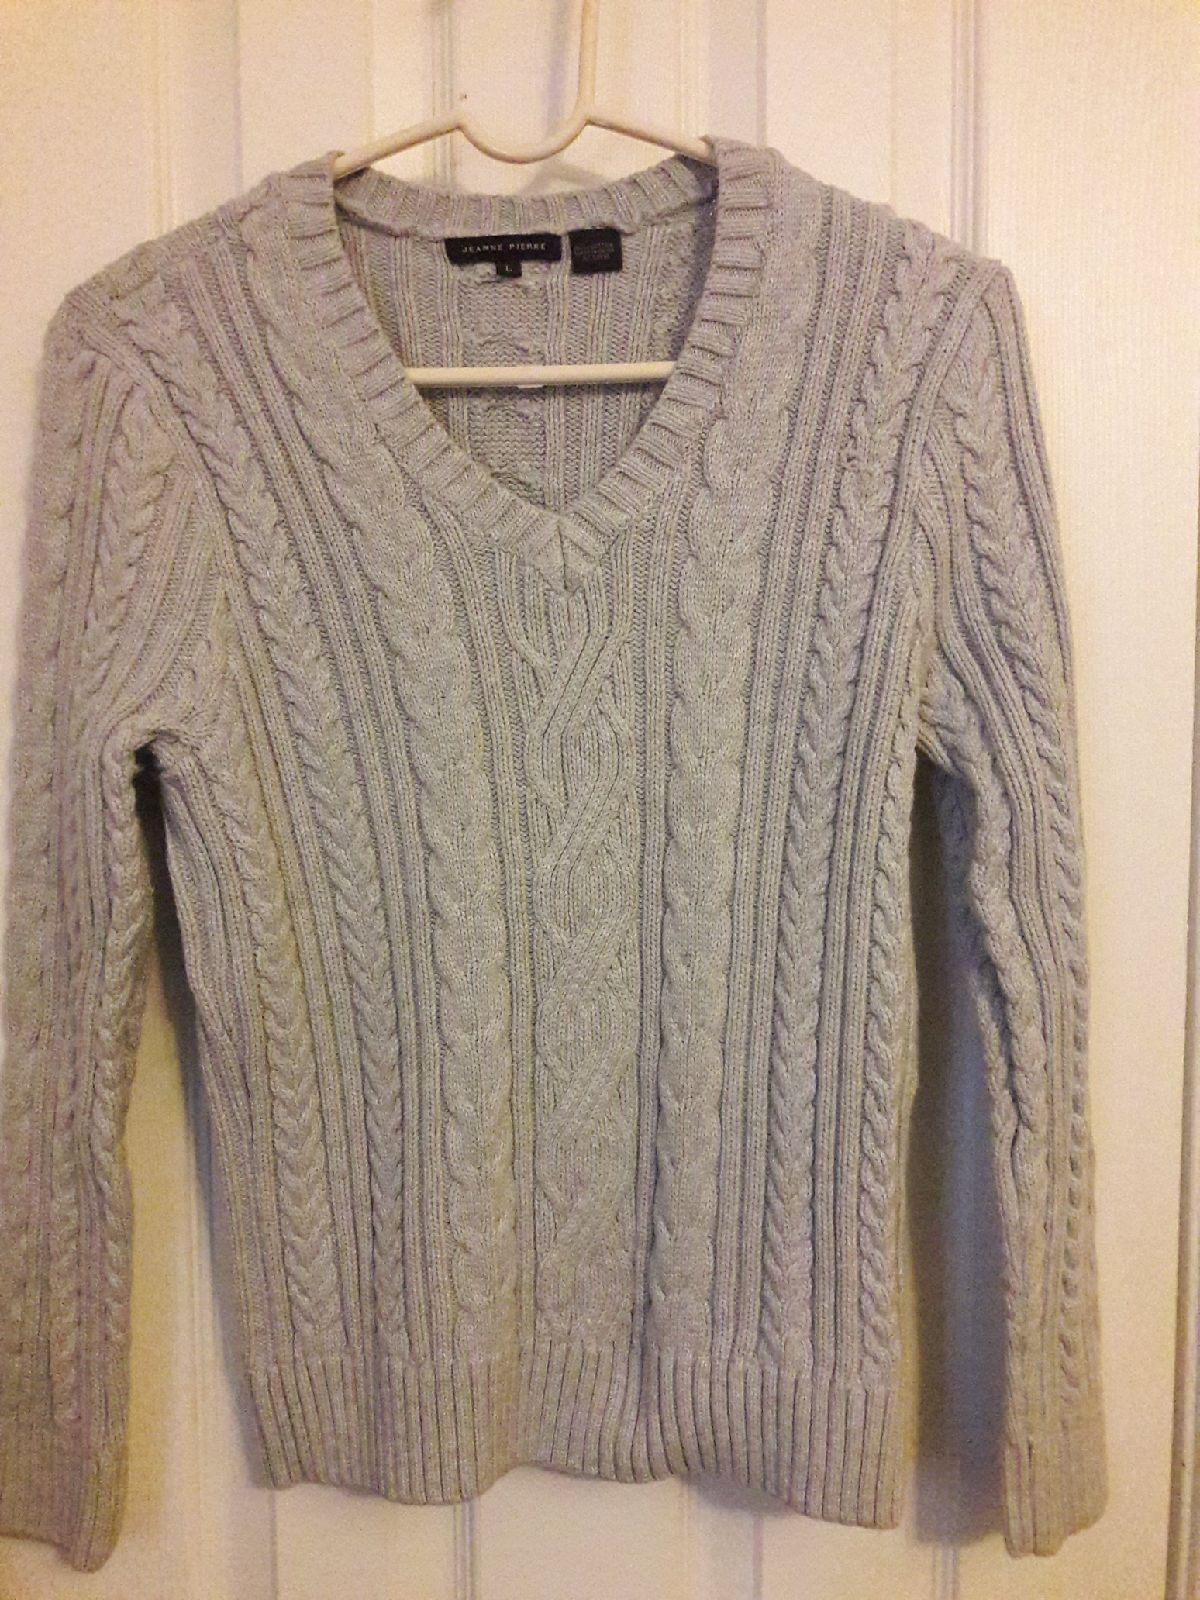 Cable Knit Sweater - Mercari: BUY & SELL THINGS YOU LOVE